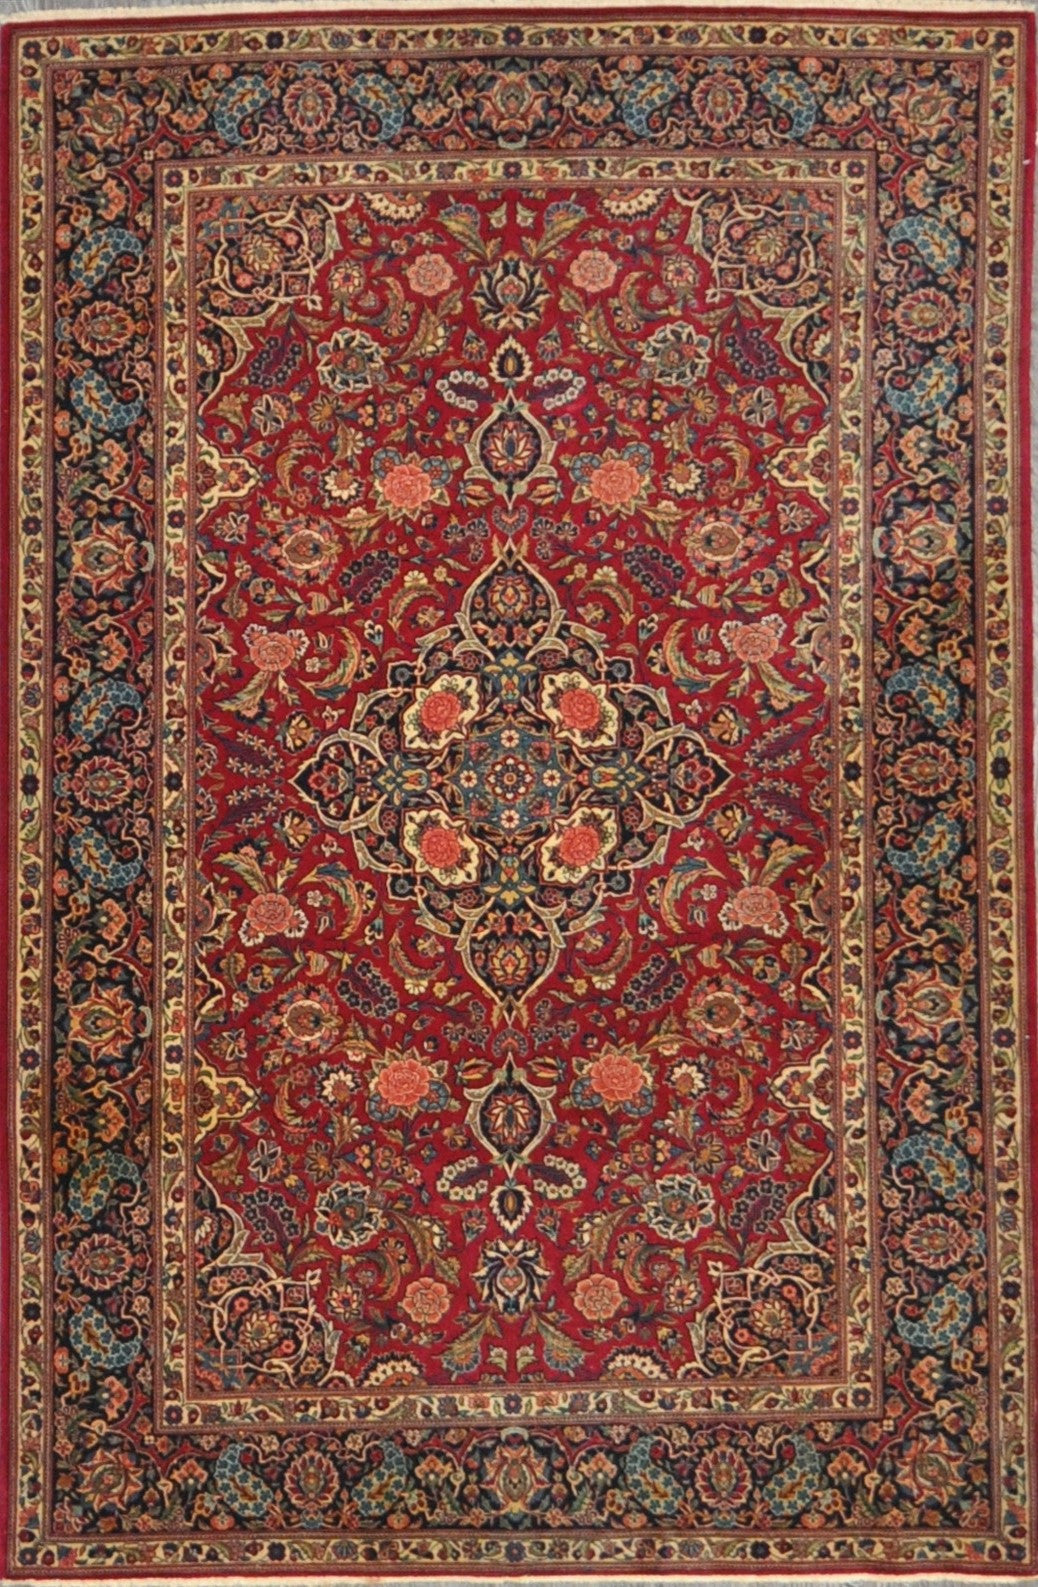 4.6x6.4 Persian antique kashan #65818